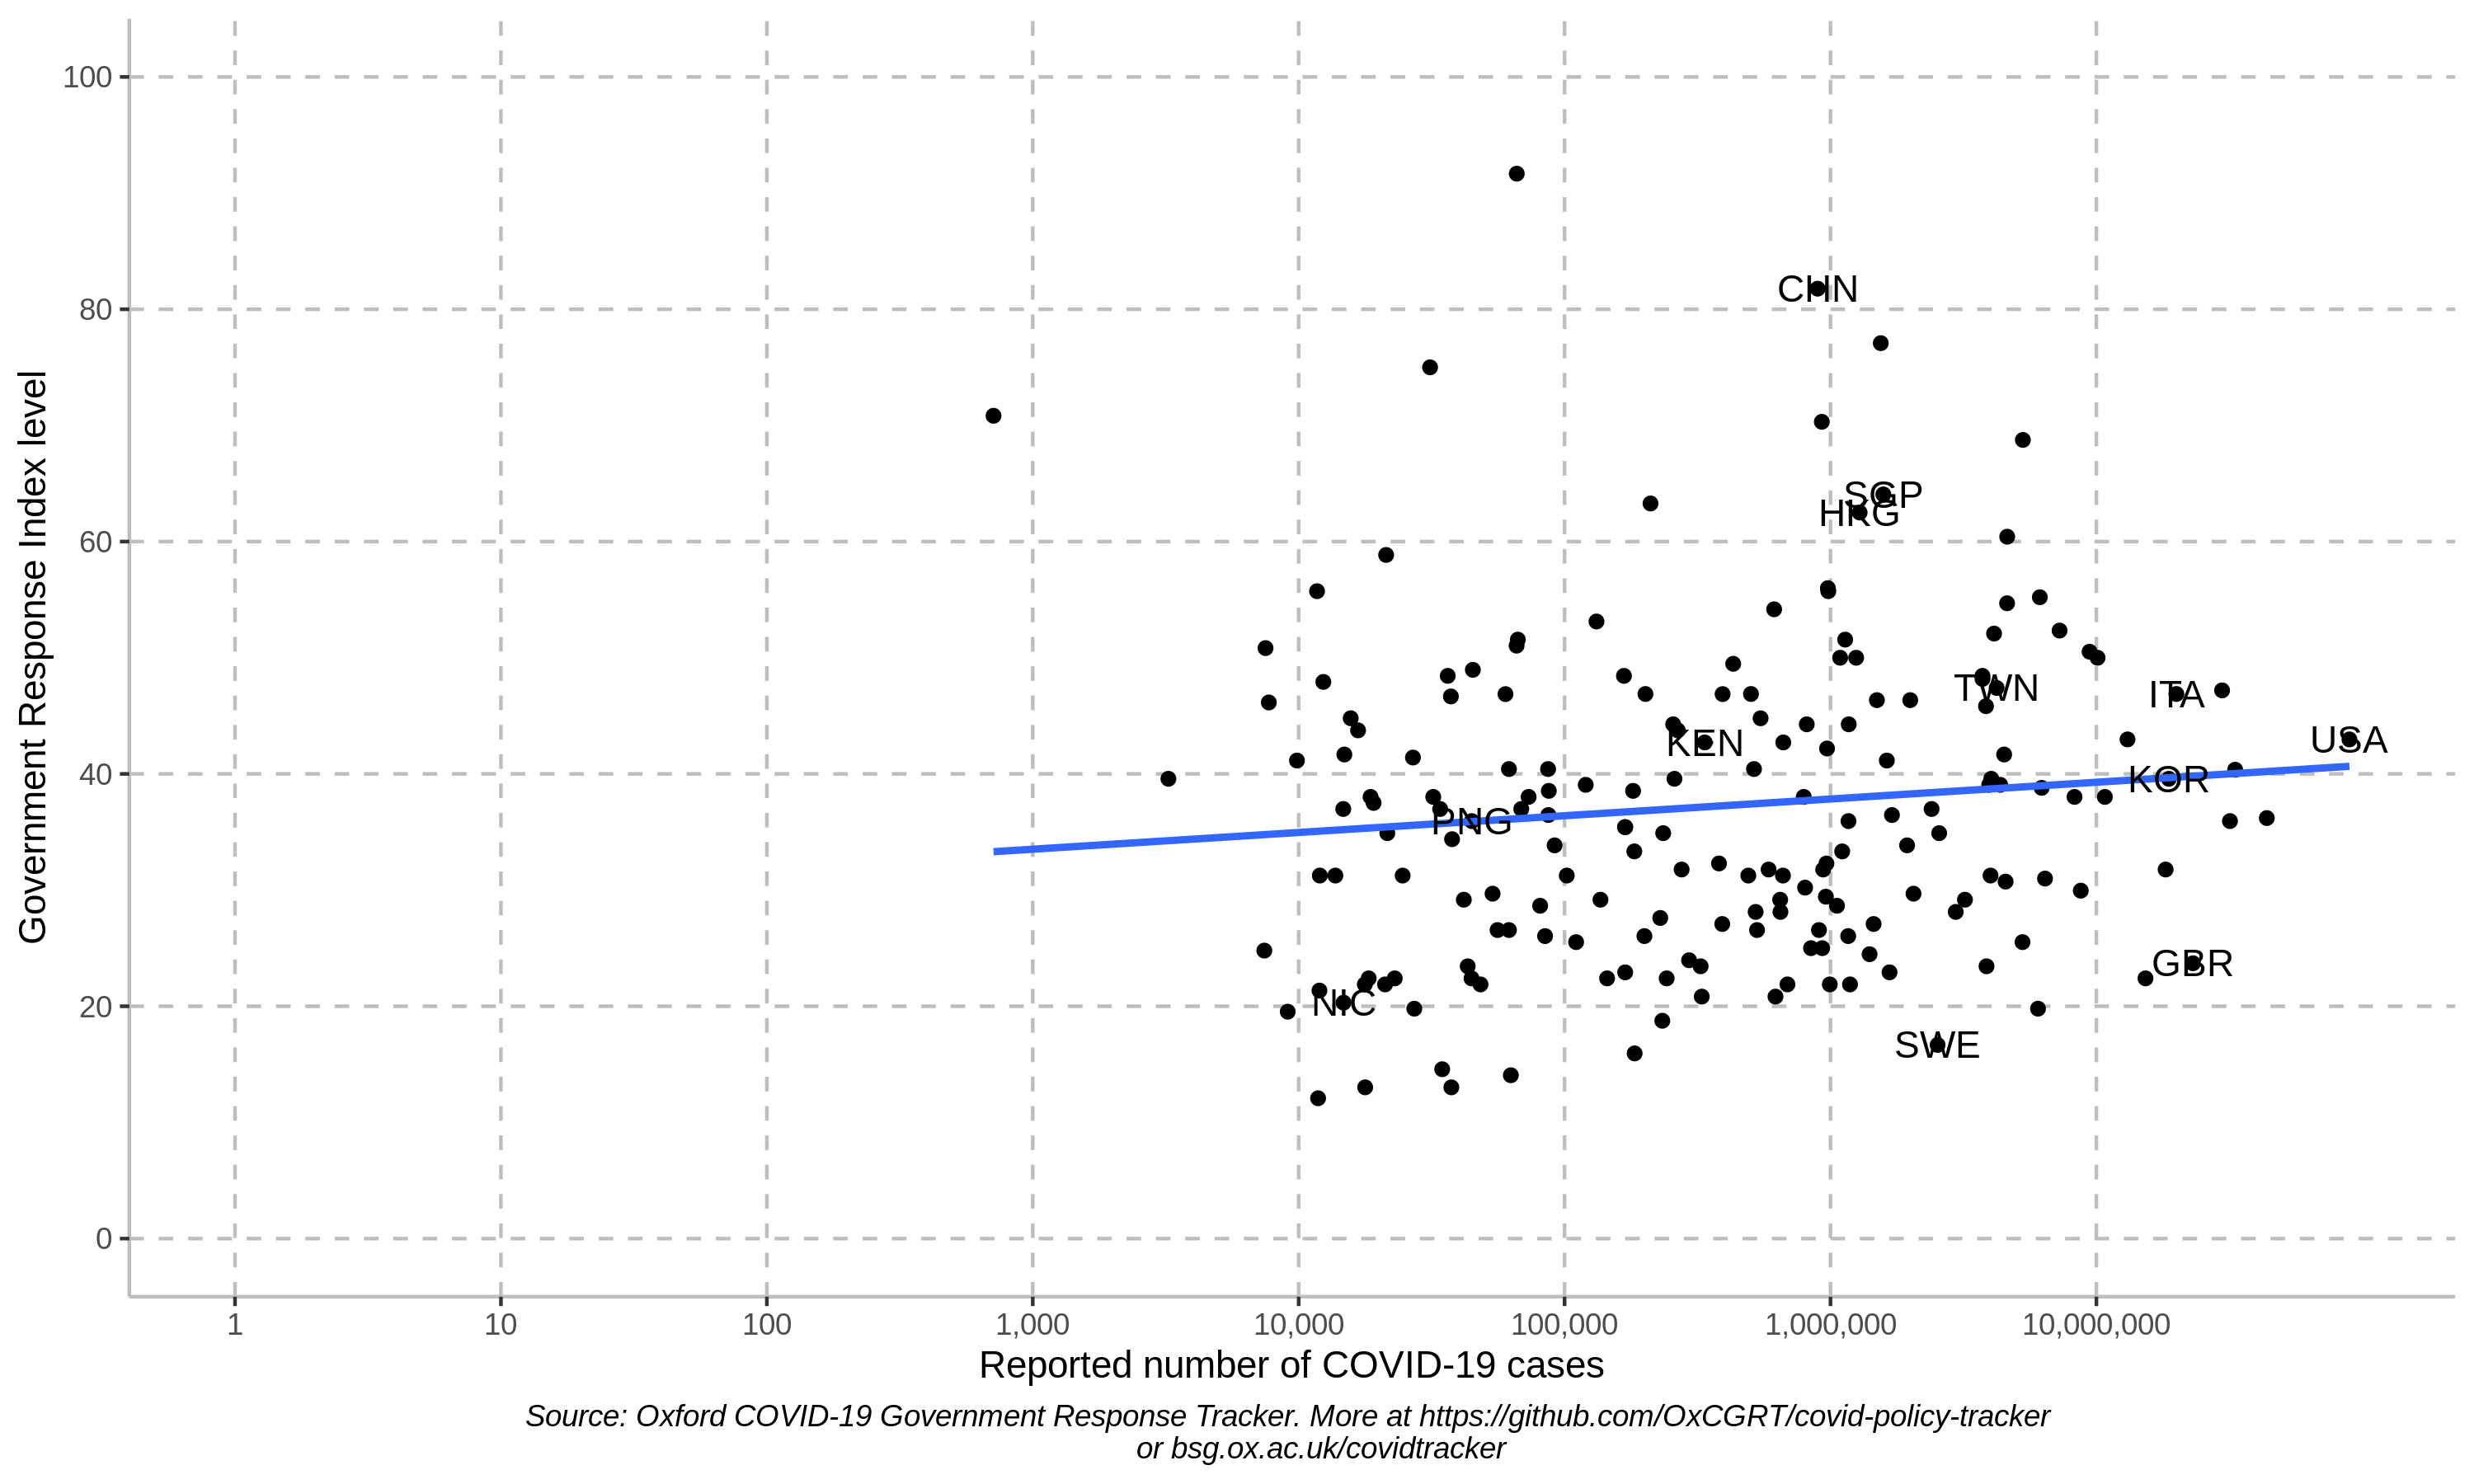 Relationship between number of COVID-19 cases and government response